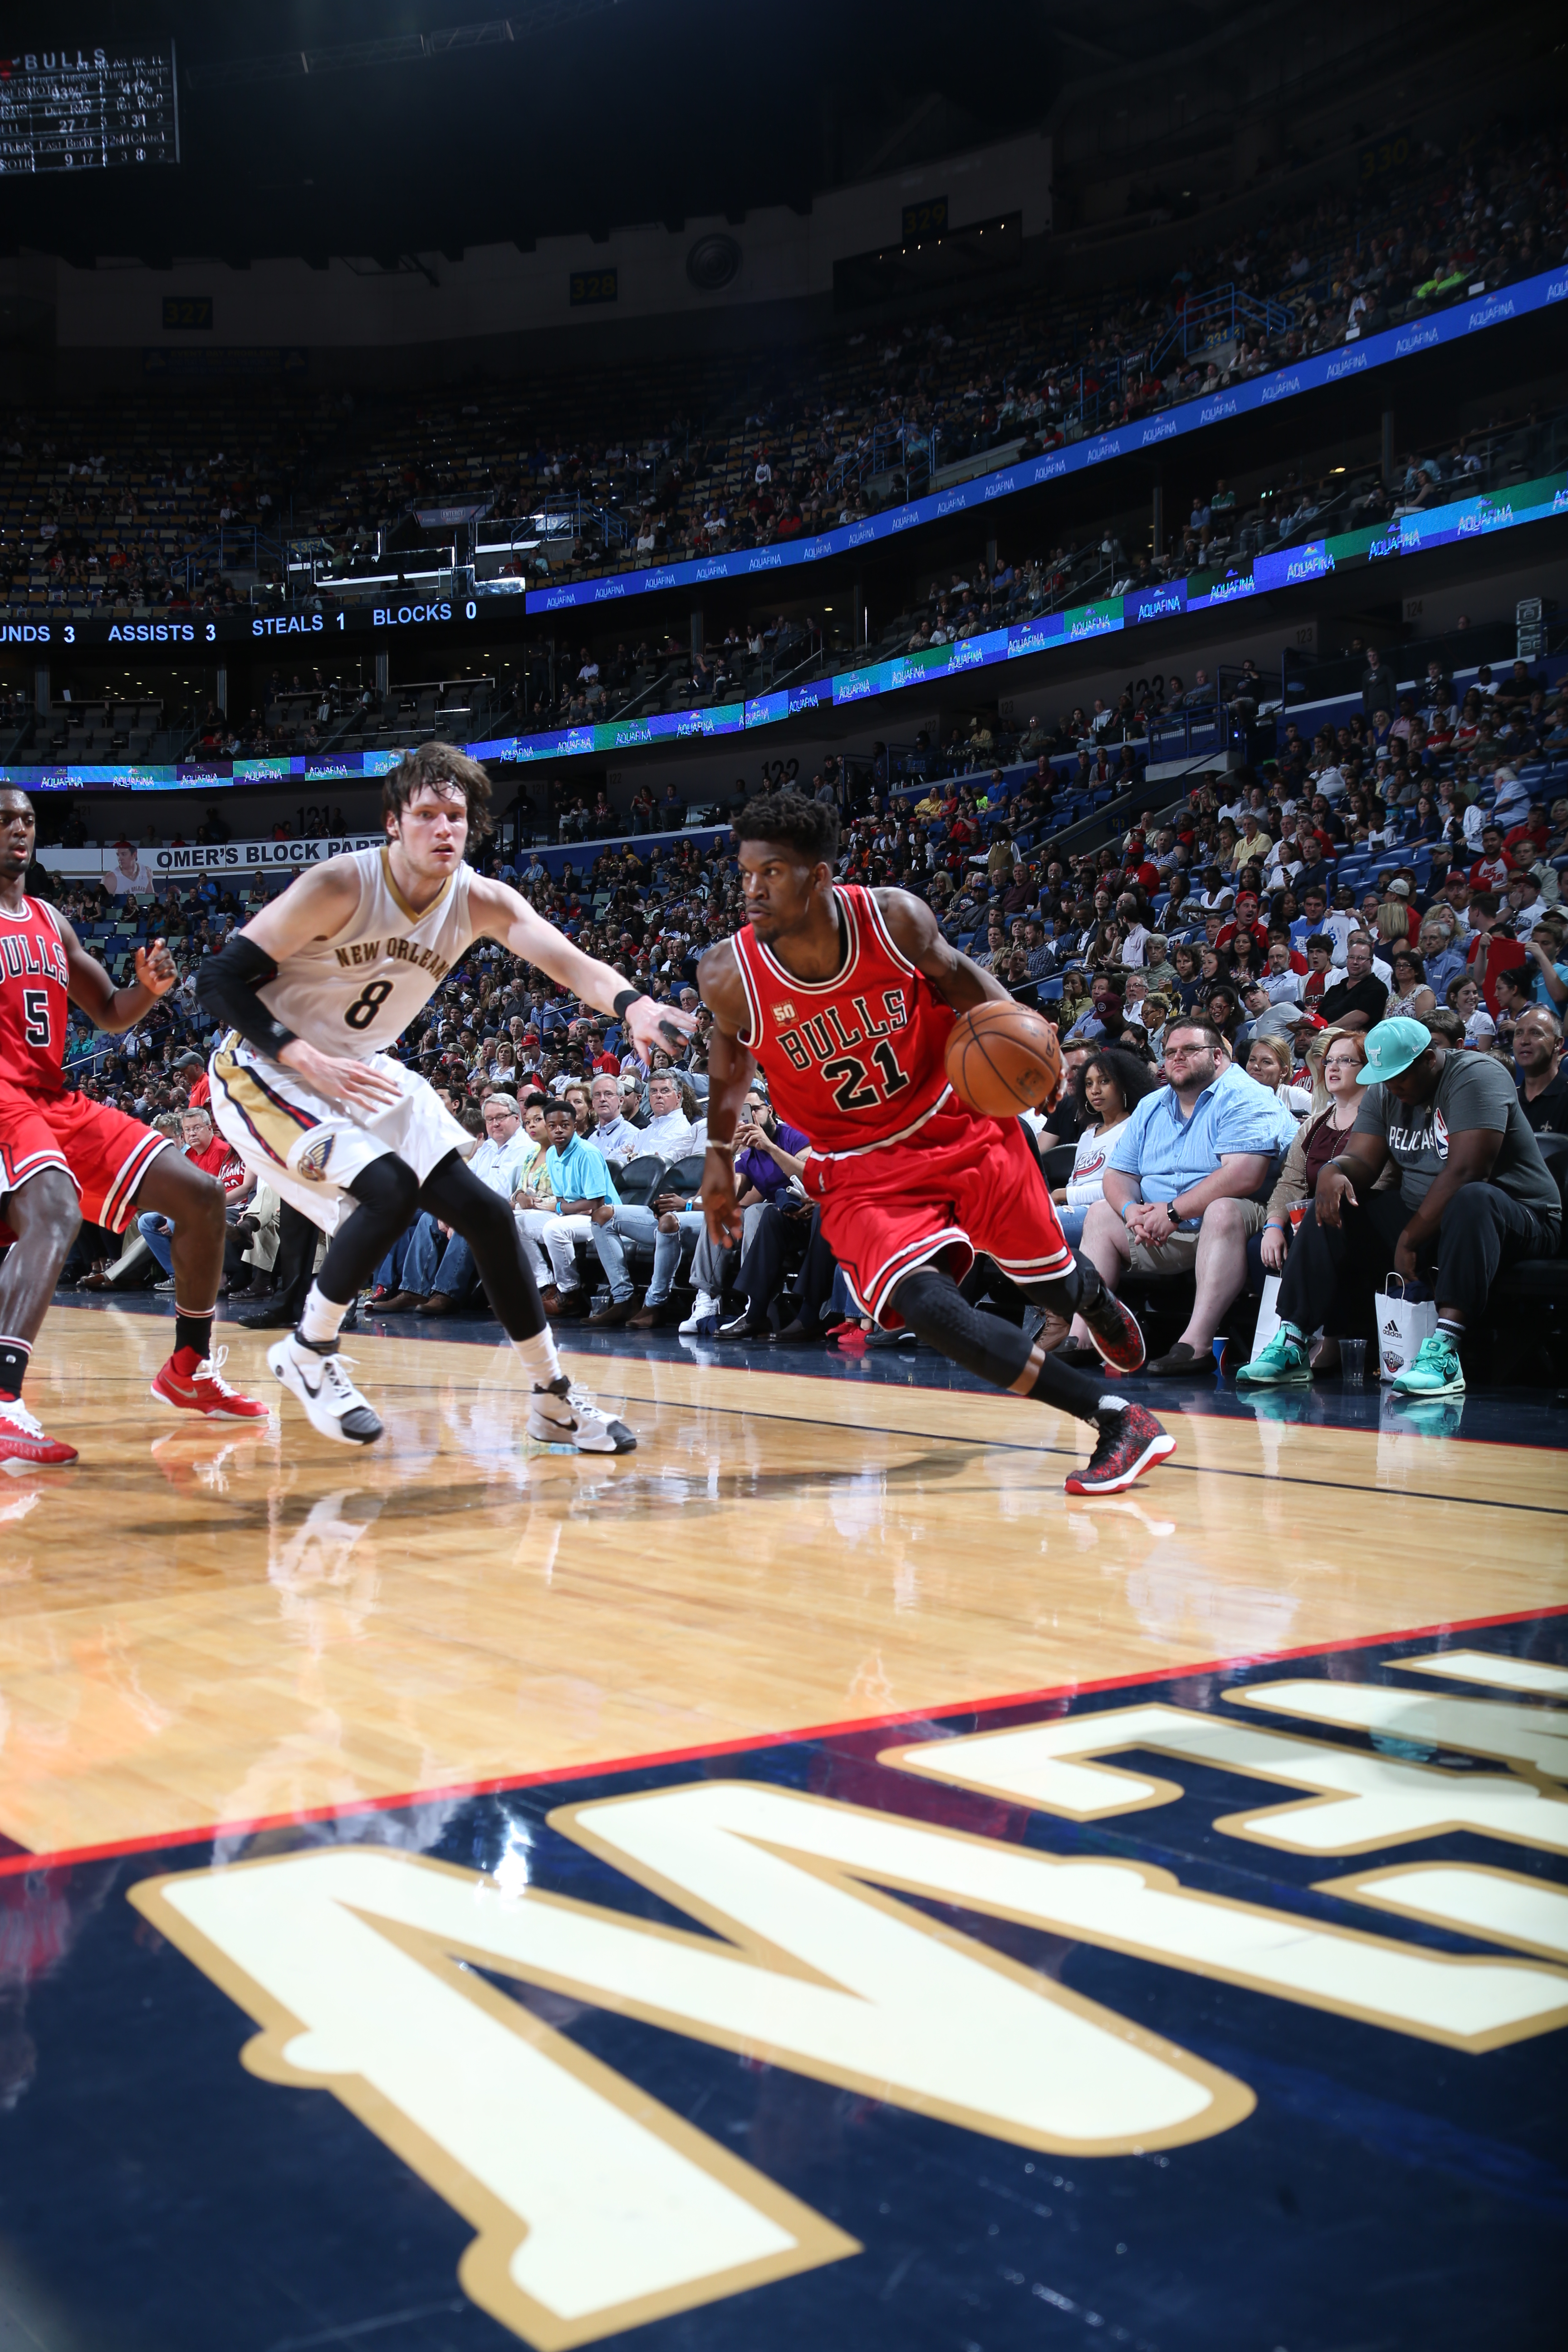 NEW ORLEANS, LA - APRIL 11:  Jimmy Butler #21 of the Chicago Bulls drives to the basket against the New Orleans Pelicans on April 11, 2016 at the Smoothie King Center in New Orleans, Louisiana. (Photo by Layne Murdoch Jr./NBAE via Getty Images)